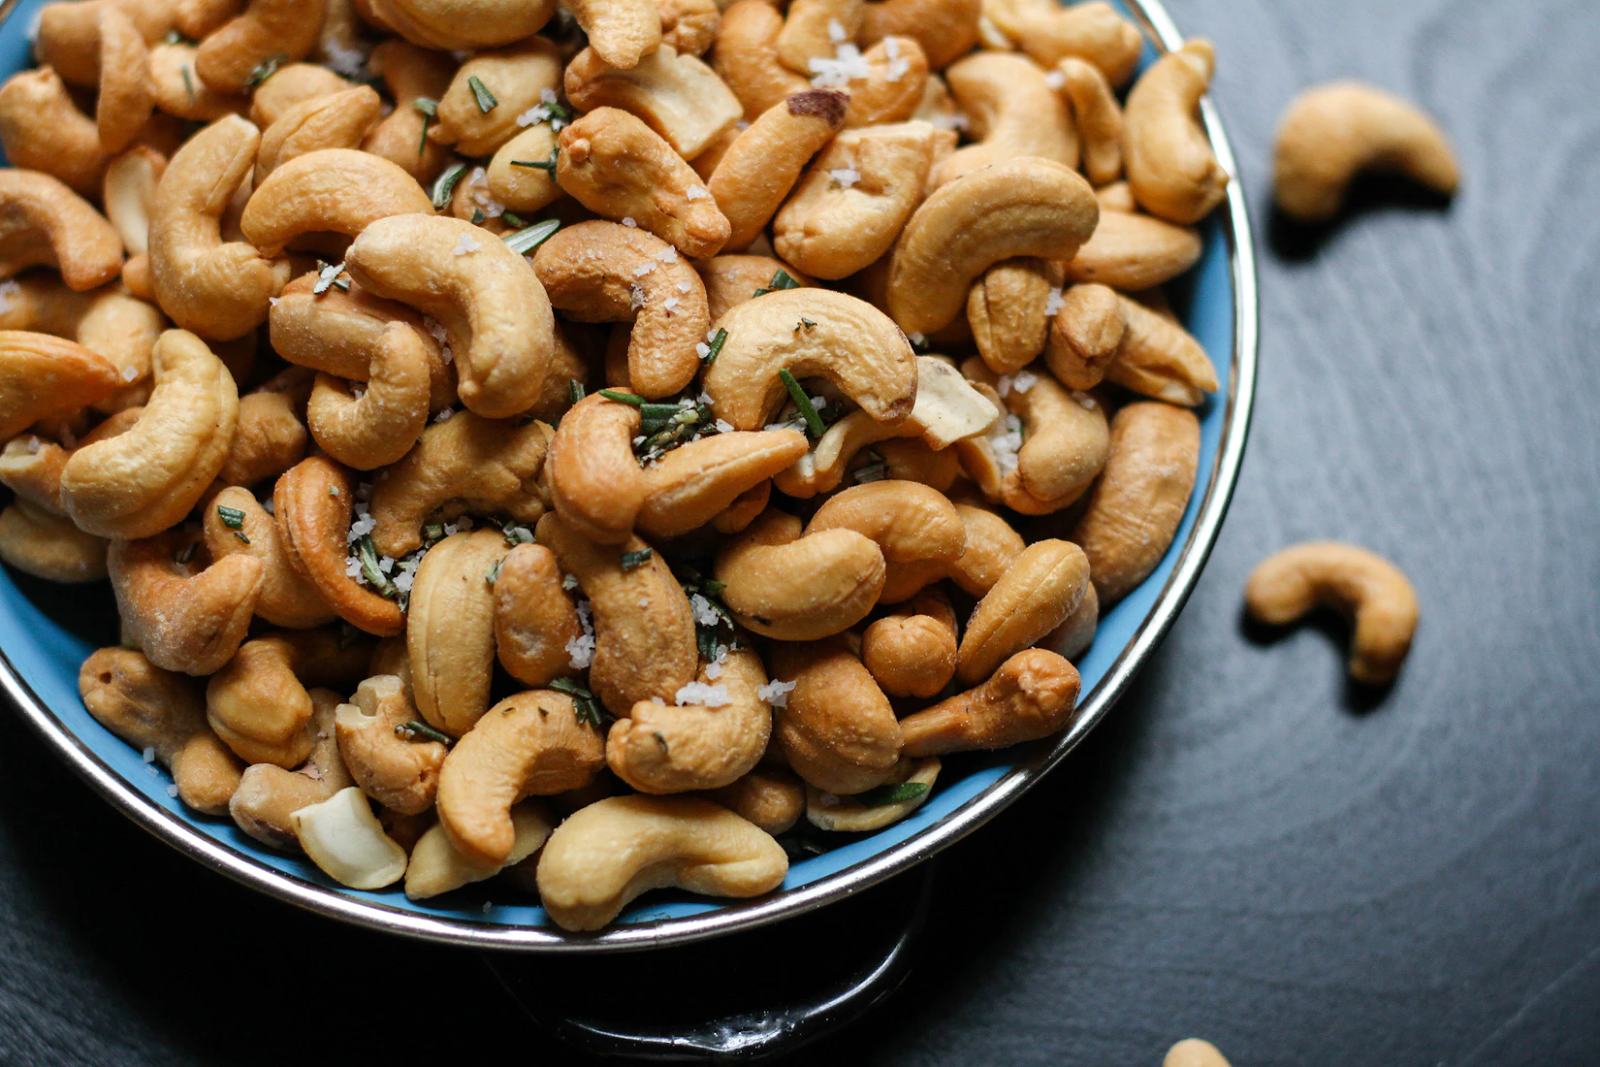 An image of a bowl of cashews sitting atop a dark, wooden table.